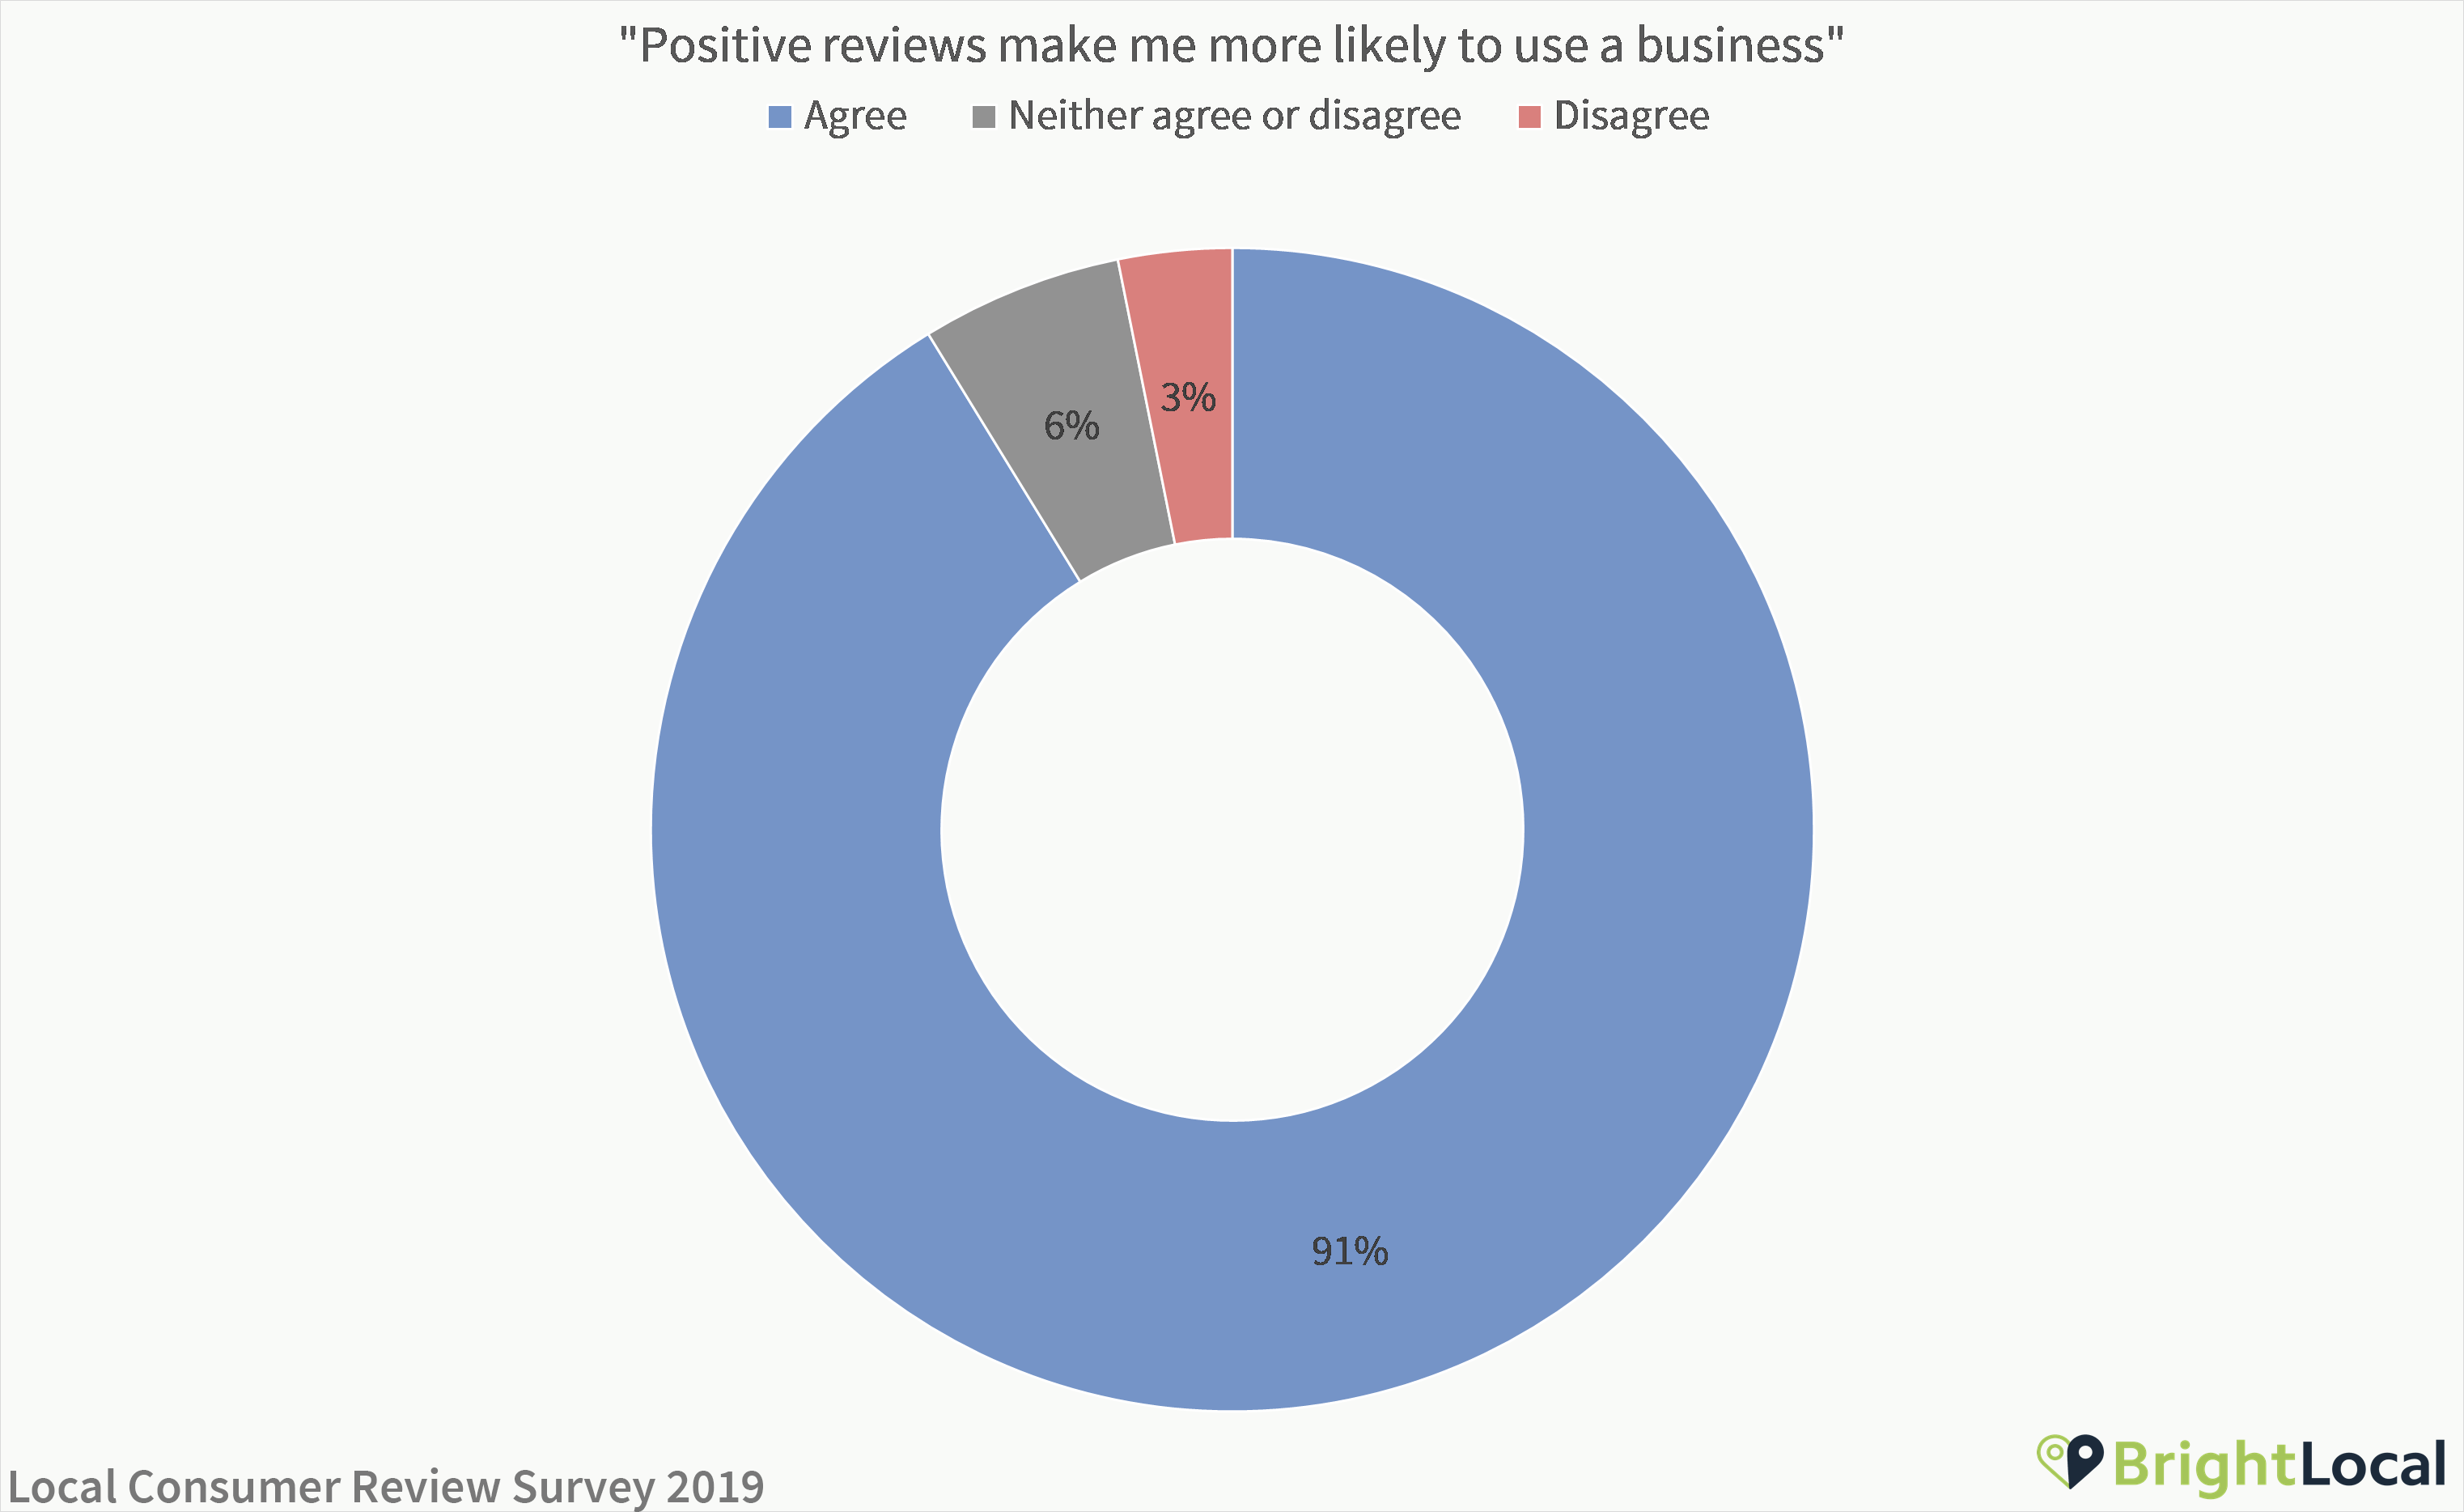 Positive reviews make me more likely to use a business